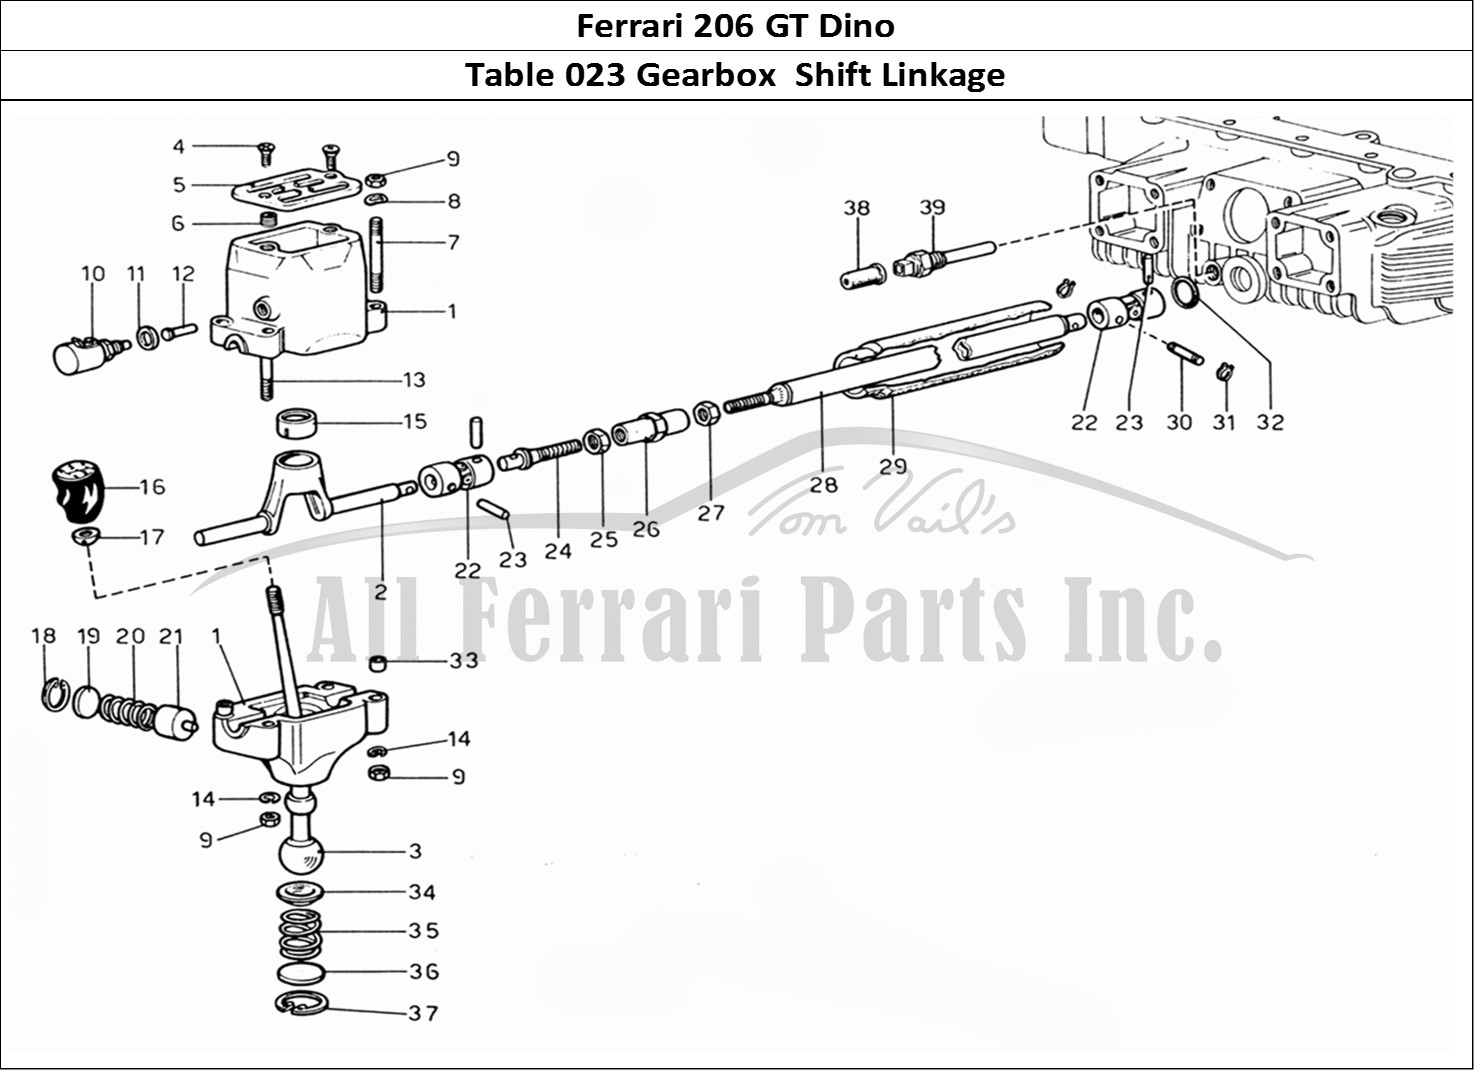 Buy Original Ferrari 206 Gt Dino 023 Gearbox Shift Linkage